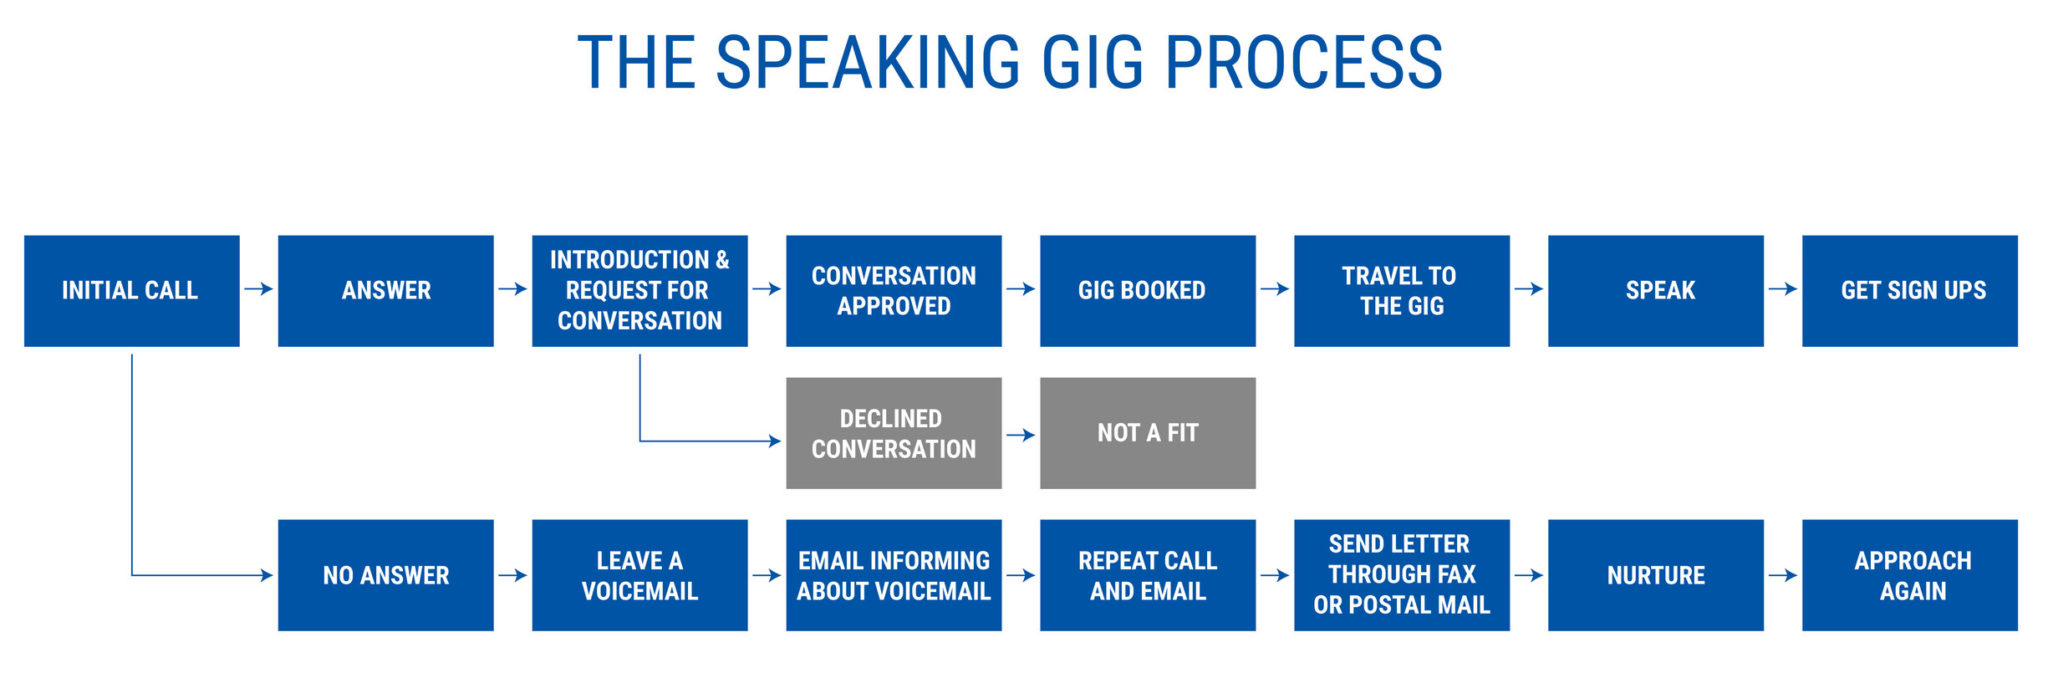 the speaking gig process - starting a coaching business while working full-time